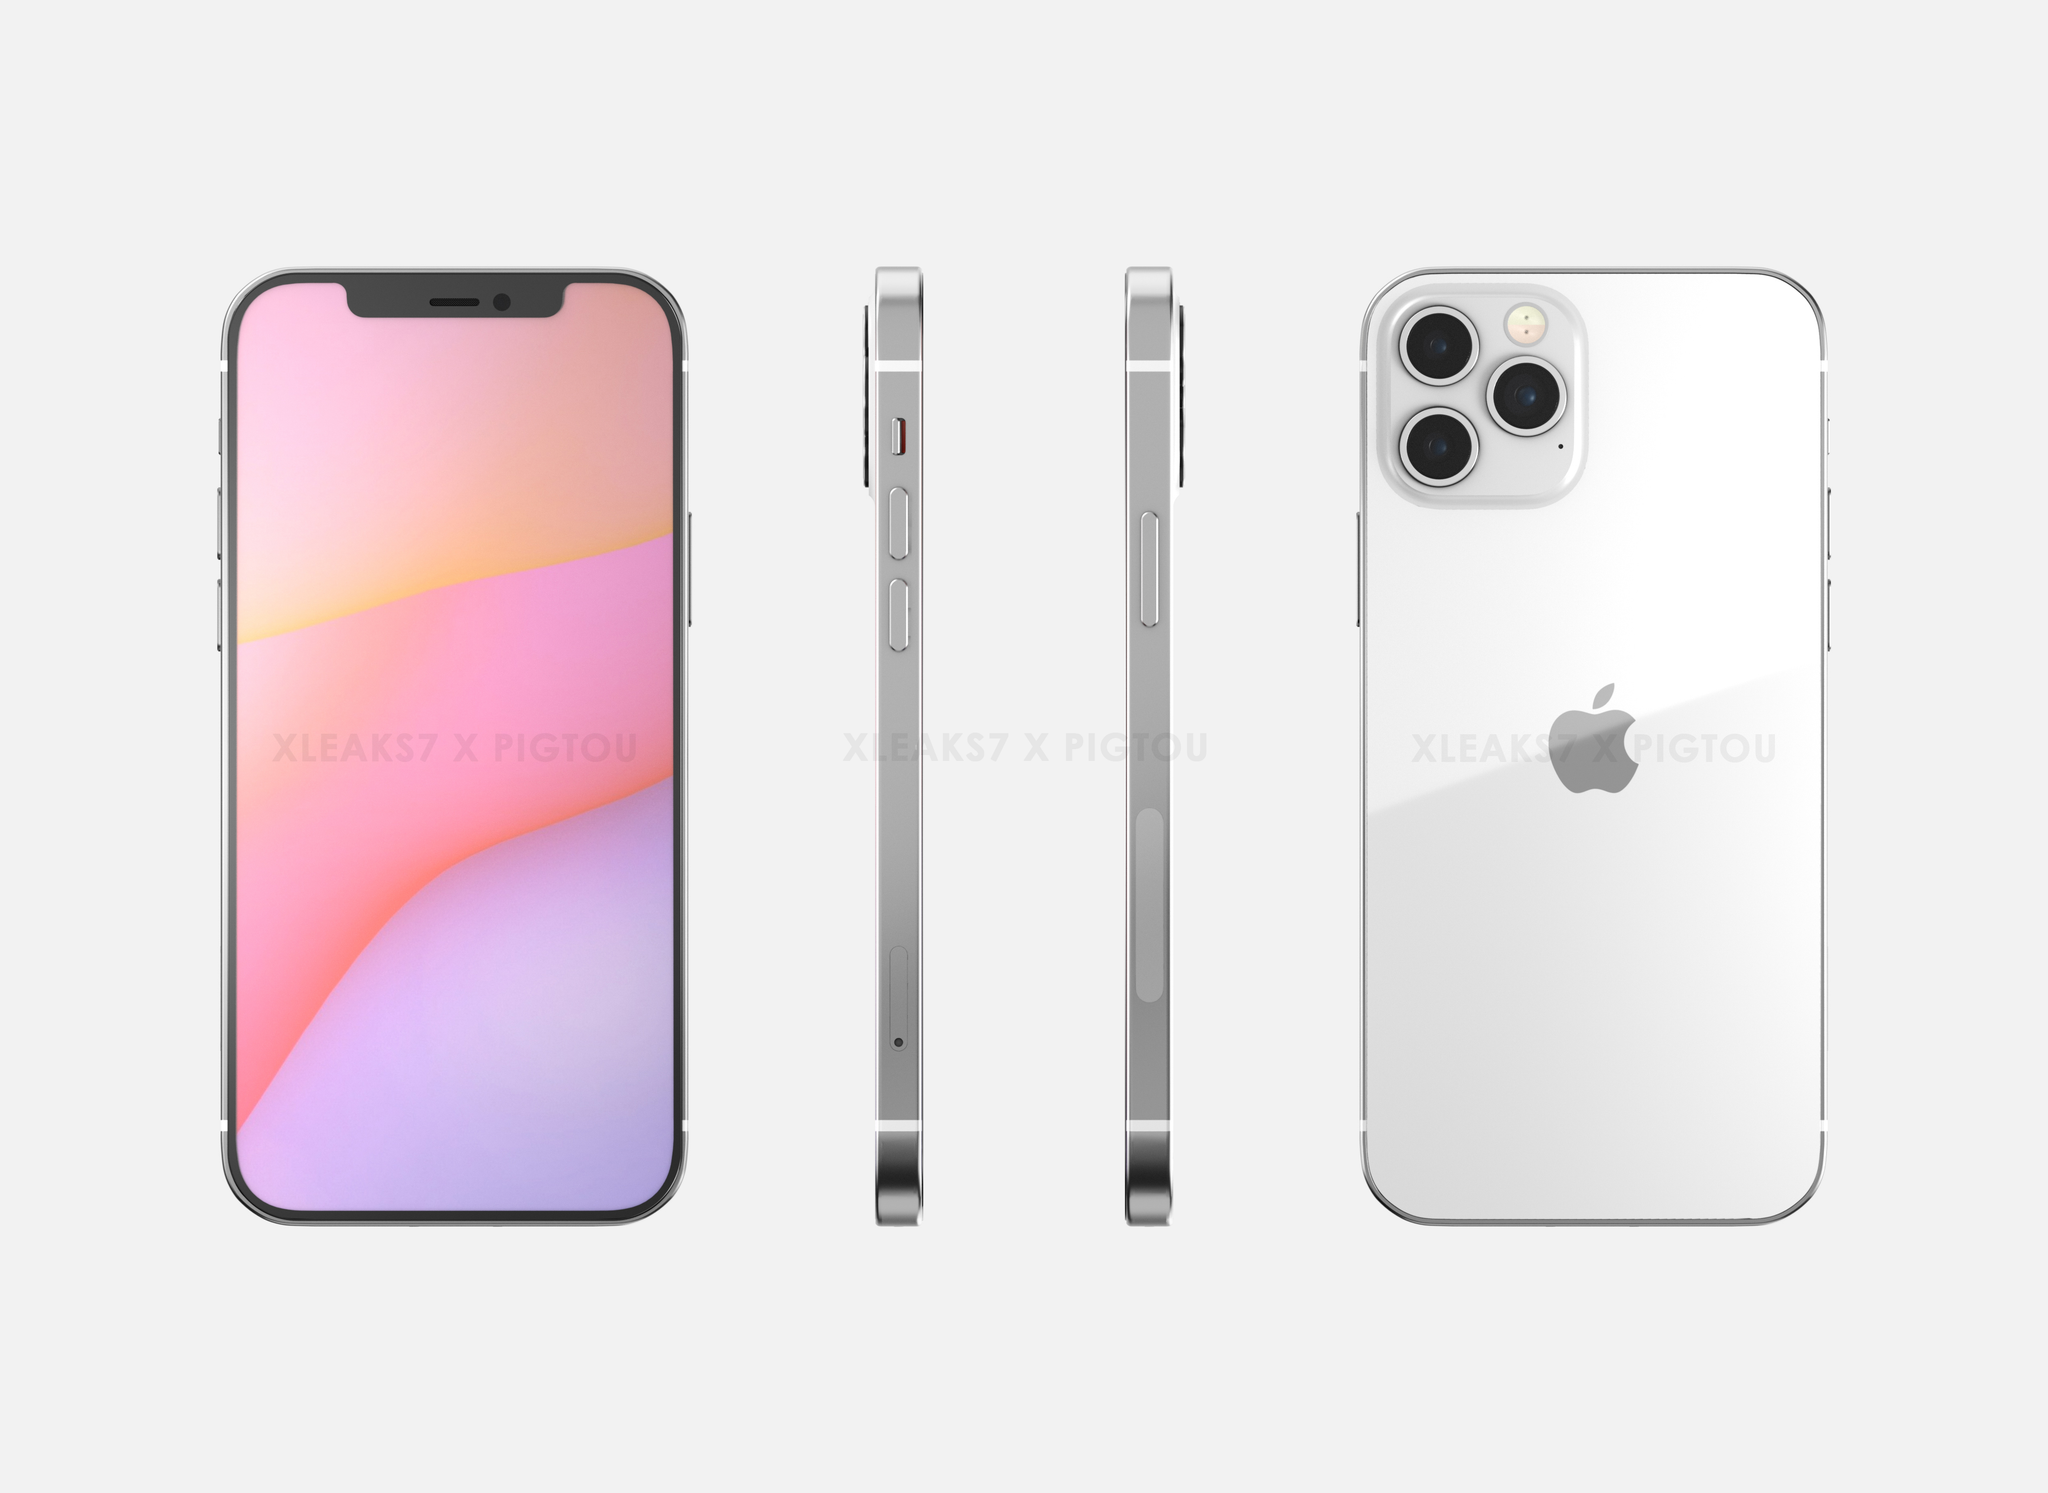 EXCLUSIVE: Leaked Apple iPhone 12 6.1 inch renders show dimensions, ca –  Pigtou